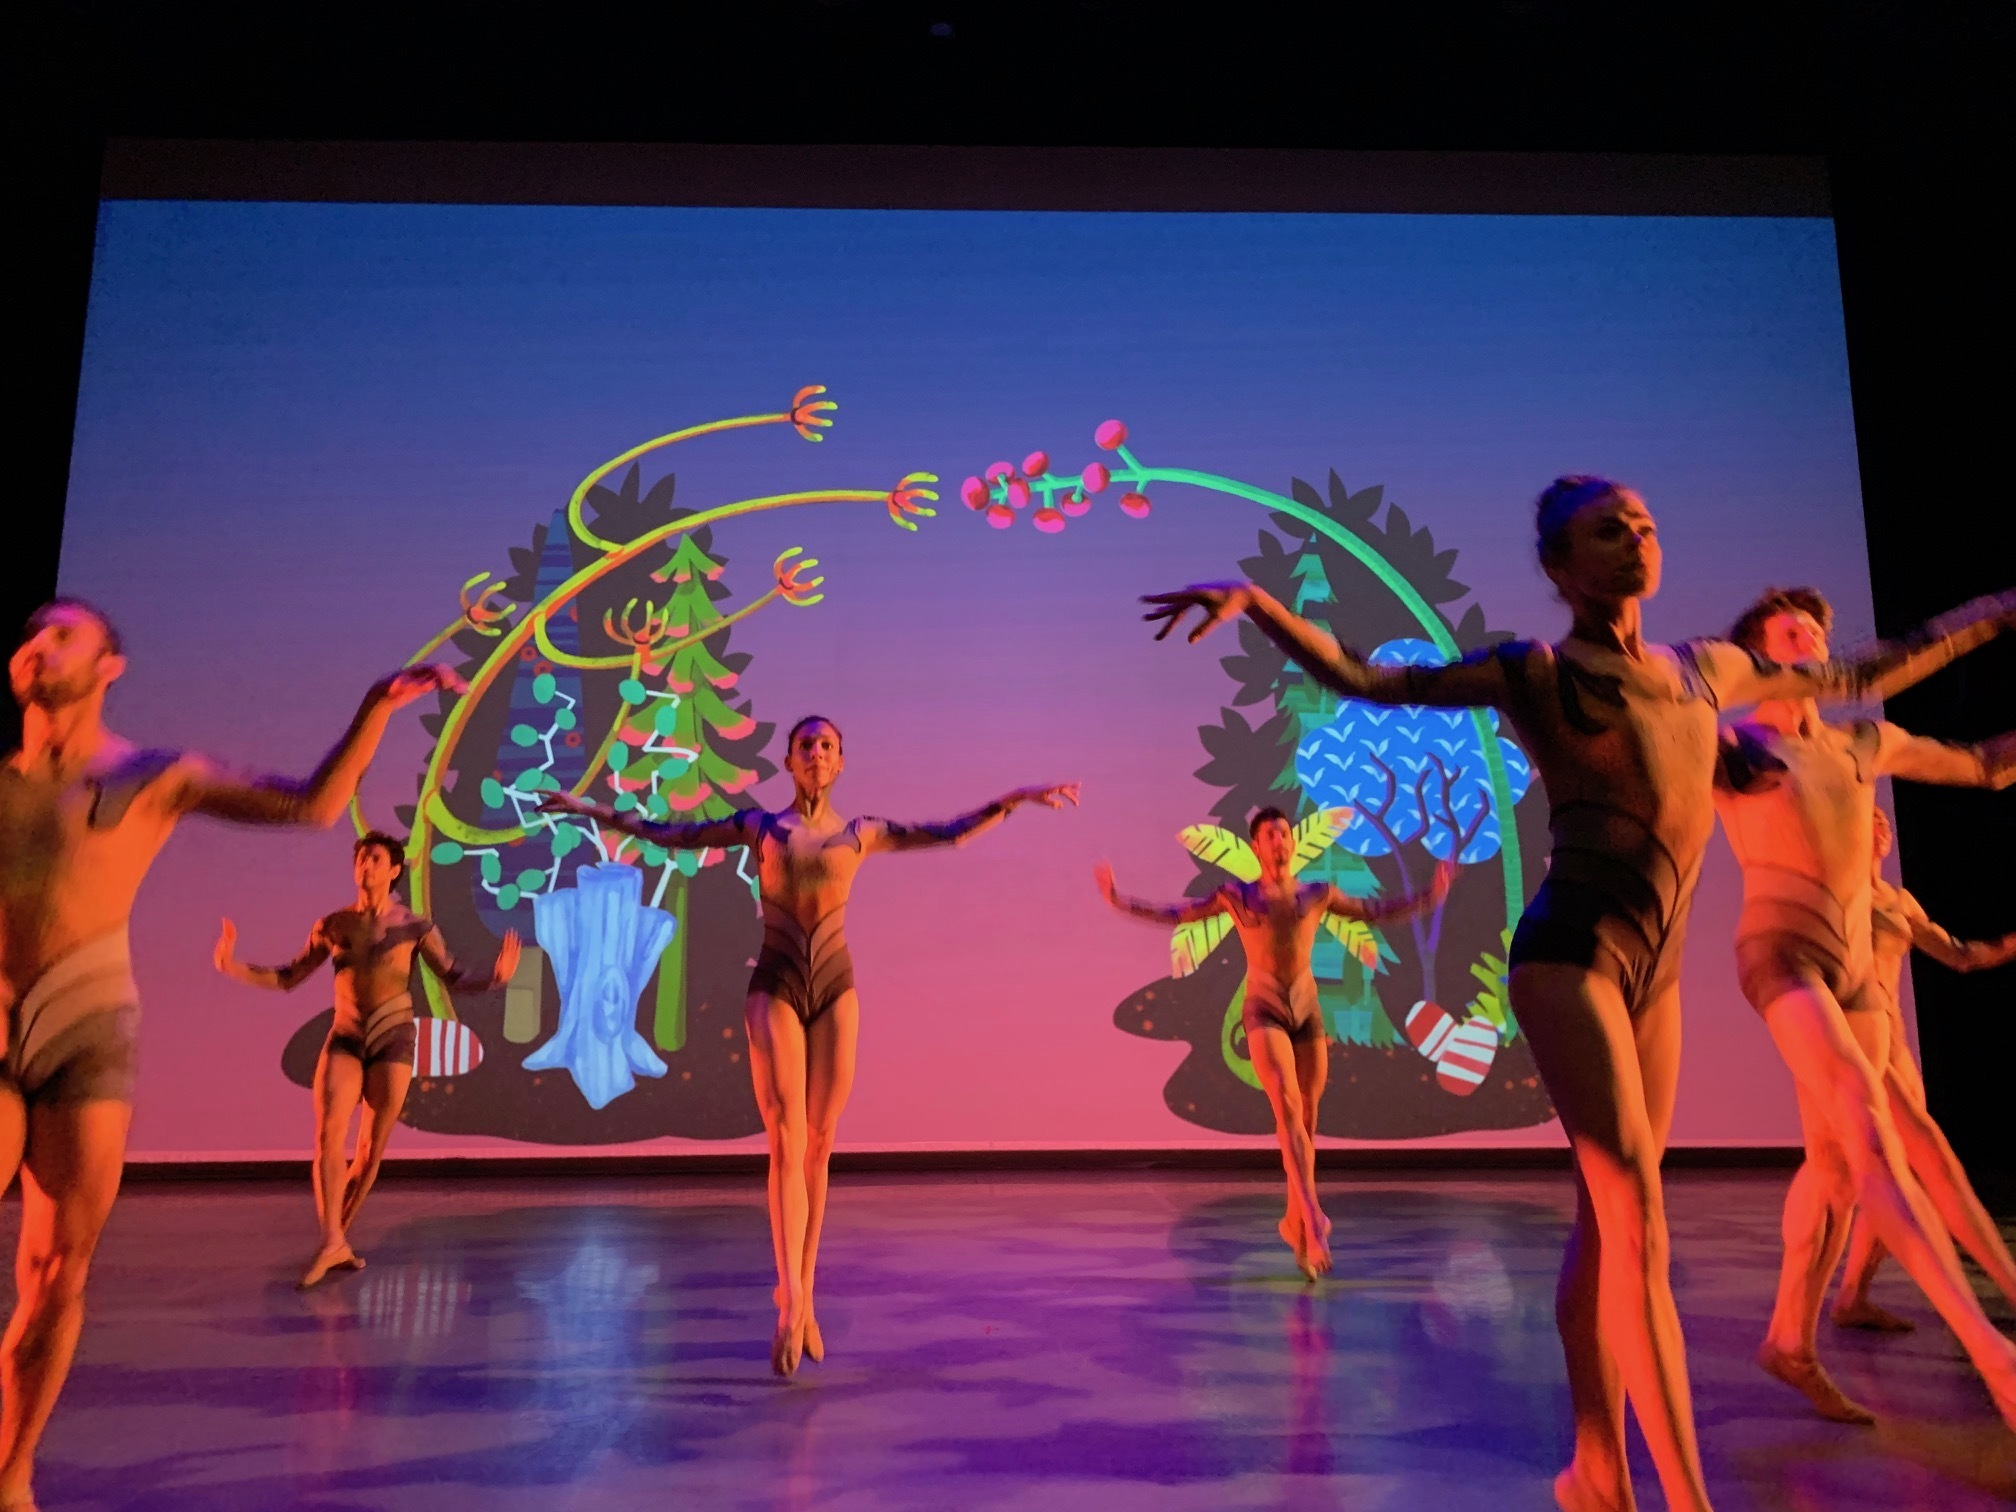 Flyway (2019) 17 minute animation, projection; collaboration with Kyle Statham; commissioned for Ballet Memphis performance Spring Mix; based on 2014 set design by Erin Harmon